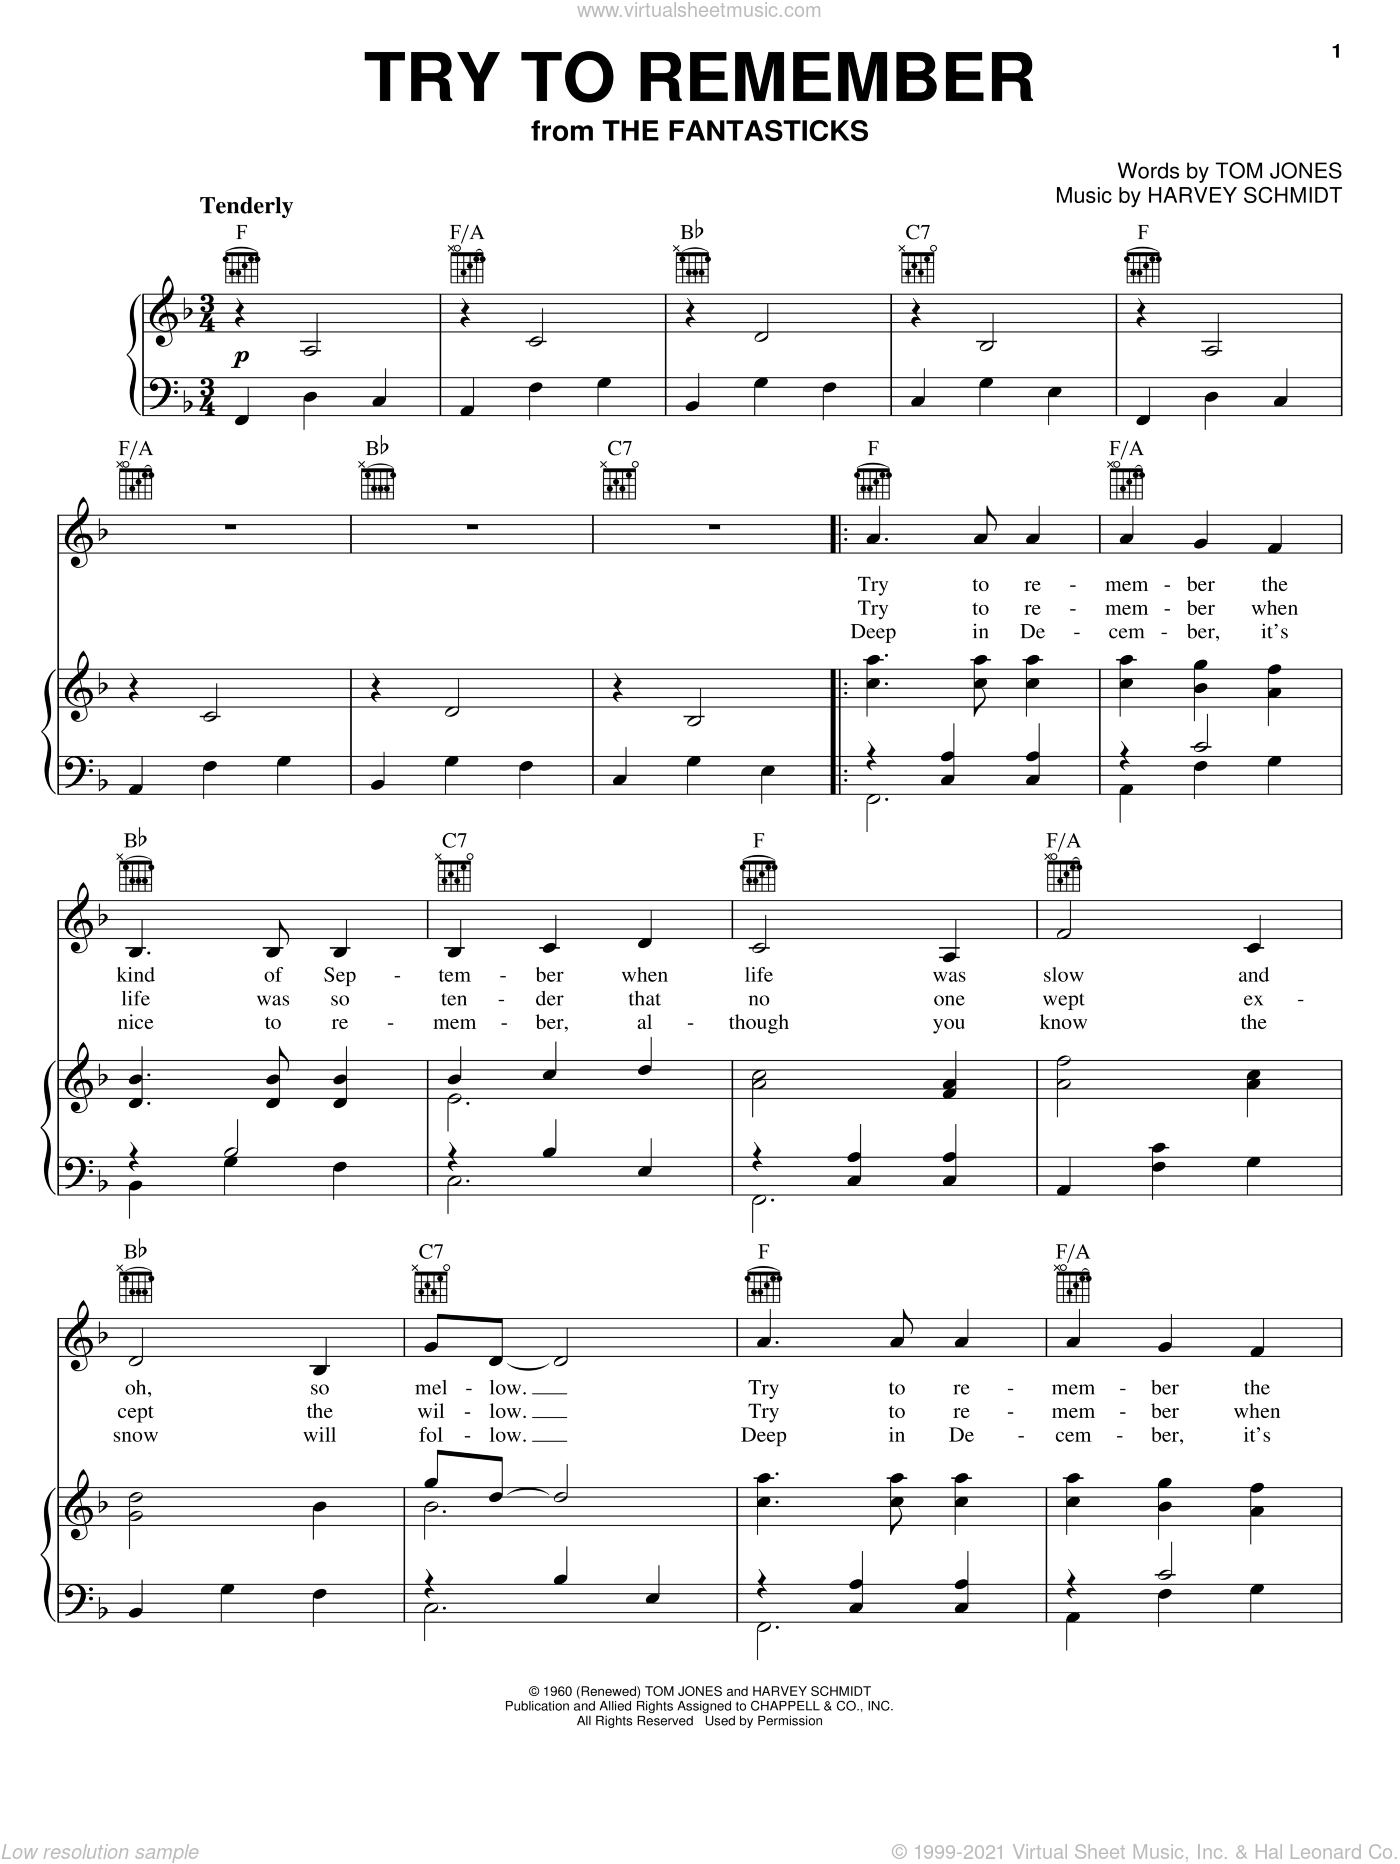 Try To Remember sheet music for voice, piano or guitar by Jerry Orbach, The Fantasticks (Musical), Harvey Schmidt and Tom Jones, intermediate skill level